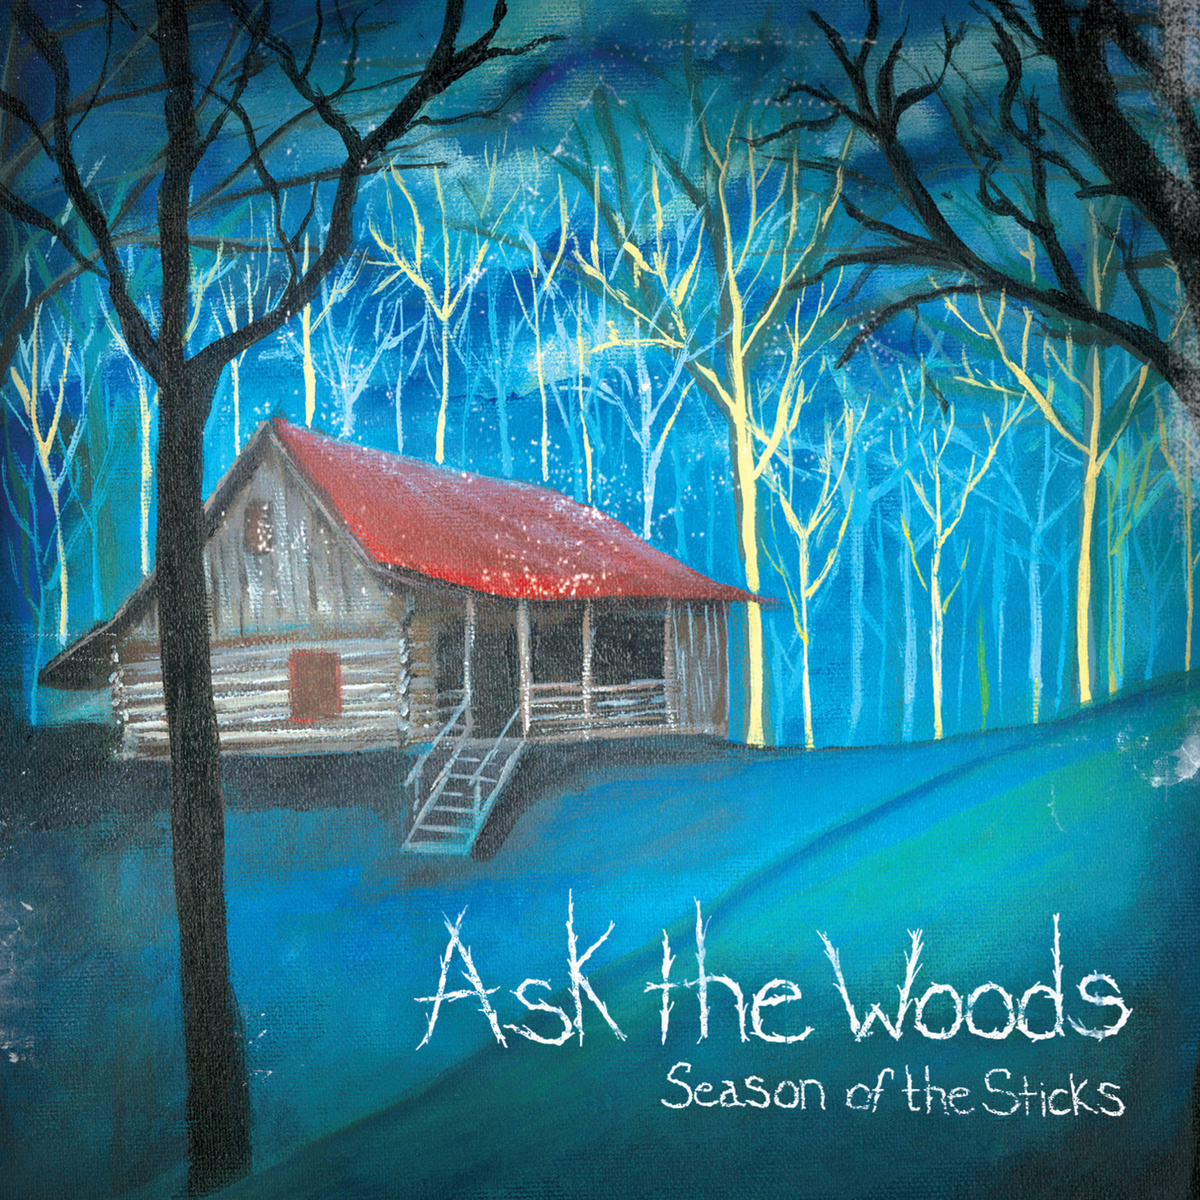 ASk the woods